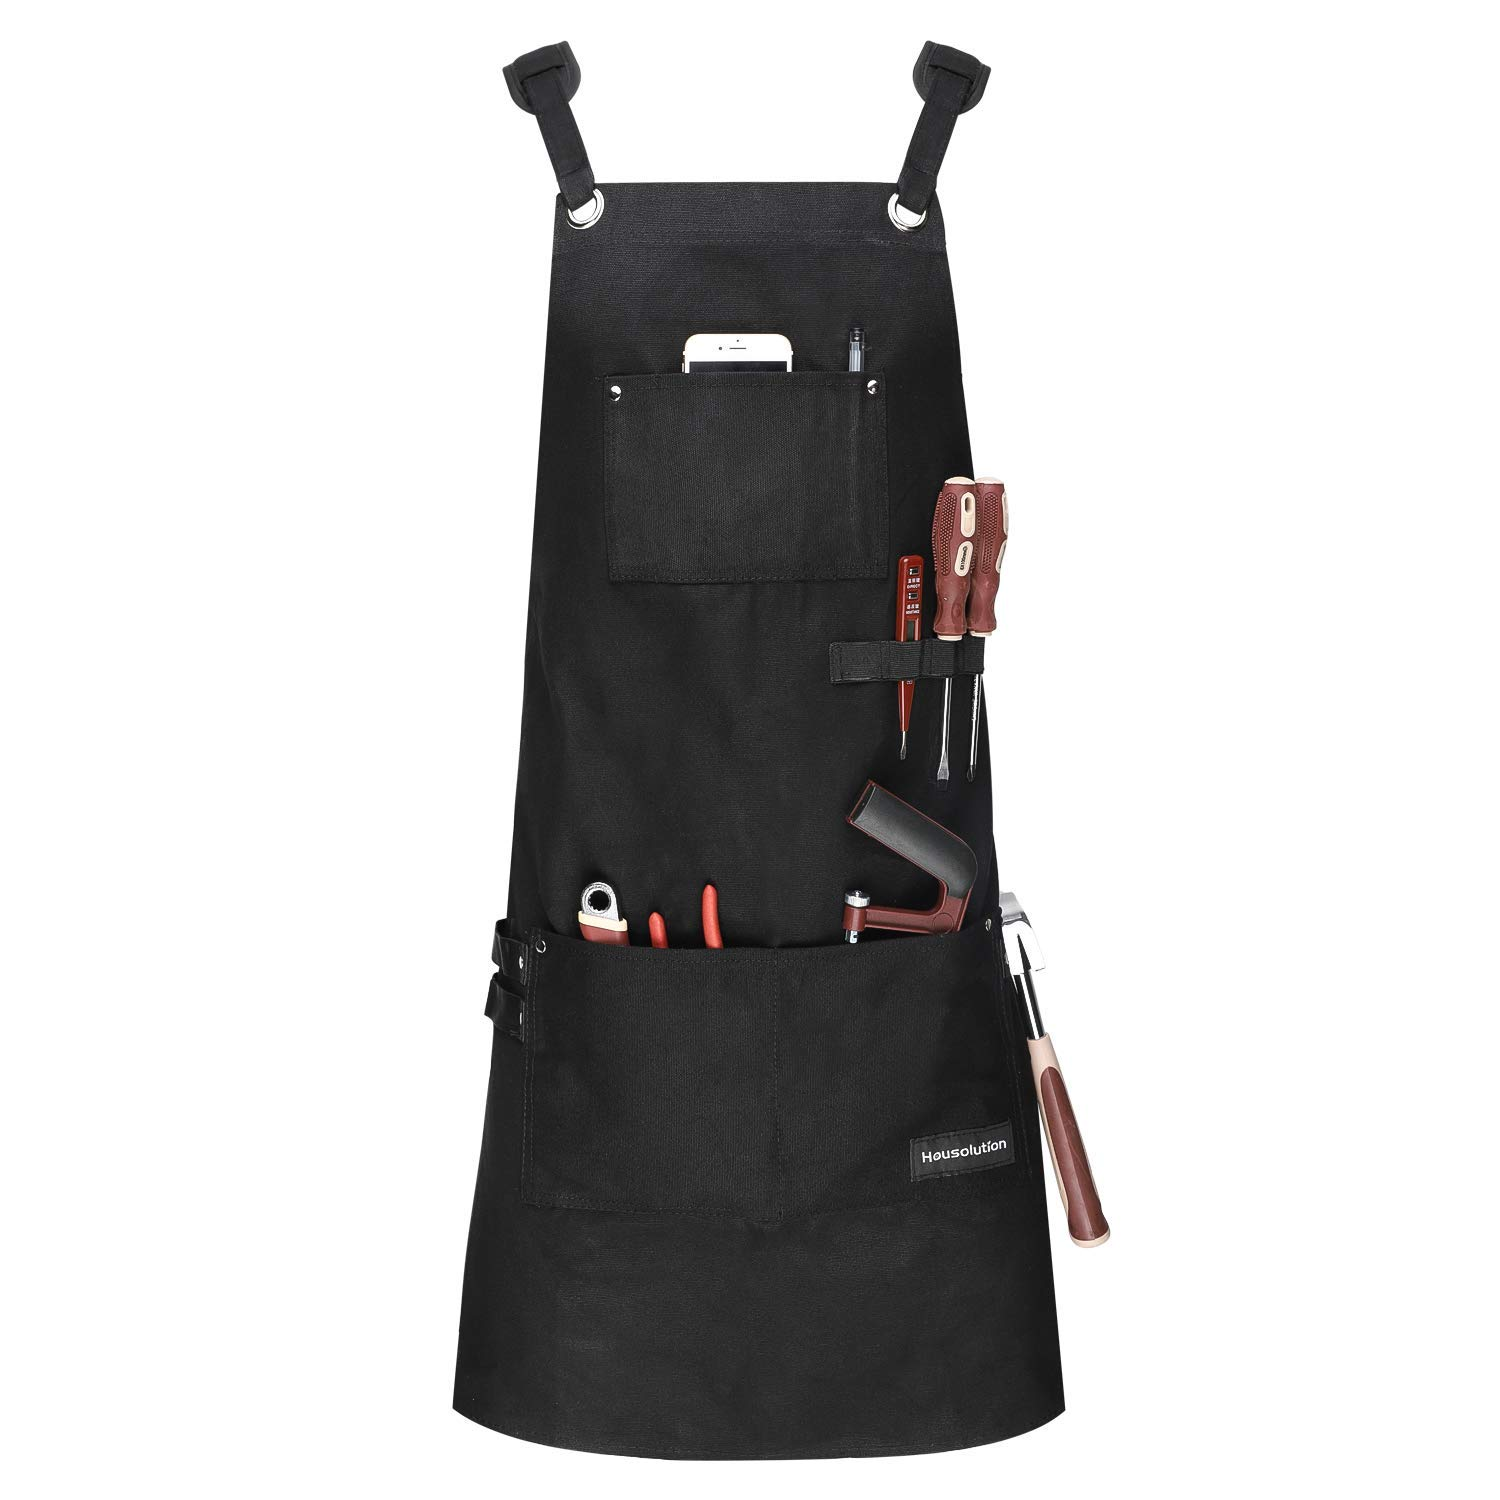 Housolution Work Apron, Multipurpose Heavy Duty Waxed Canvas Waterproof Oil-resistant Tools Apron with Tool Pockets for Woodworking Crafting Painting etc, Cross-Back Straps, Adjustable M to XXL, Black